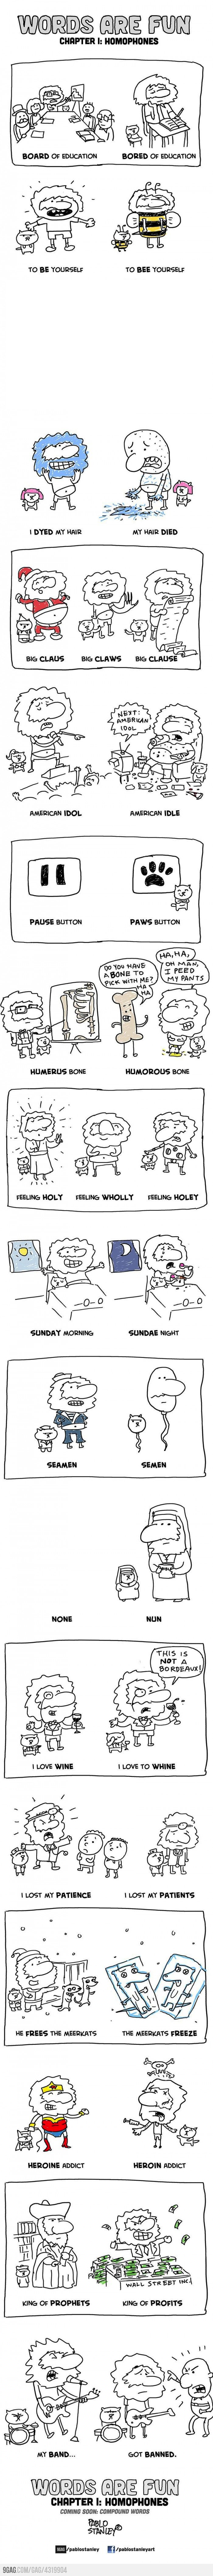 several homophones explained with funny cartoons